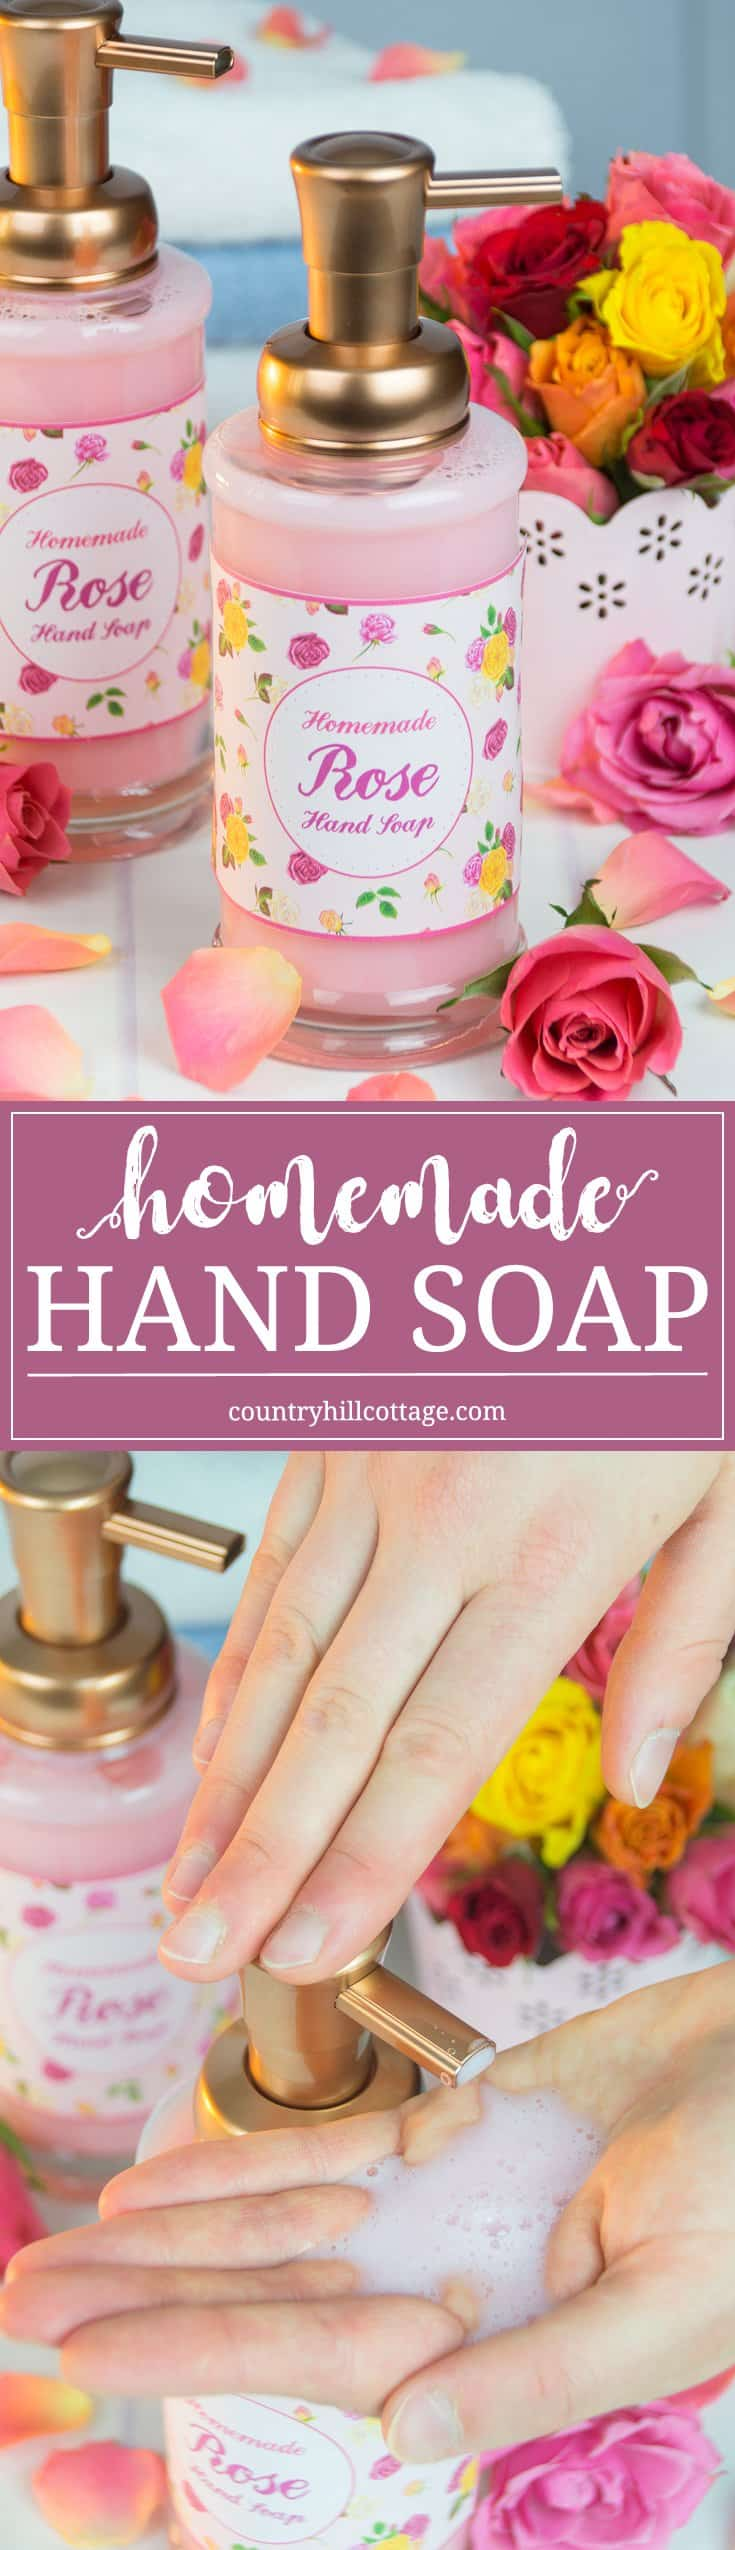 Our DIY liquid hand soap foams beautifully and smells amazing. Use our free printable label to decorate the soap and to give as a pretty homemade gift! #homemade #soap #beautydiy | countryhillcottage.com